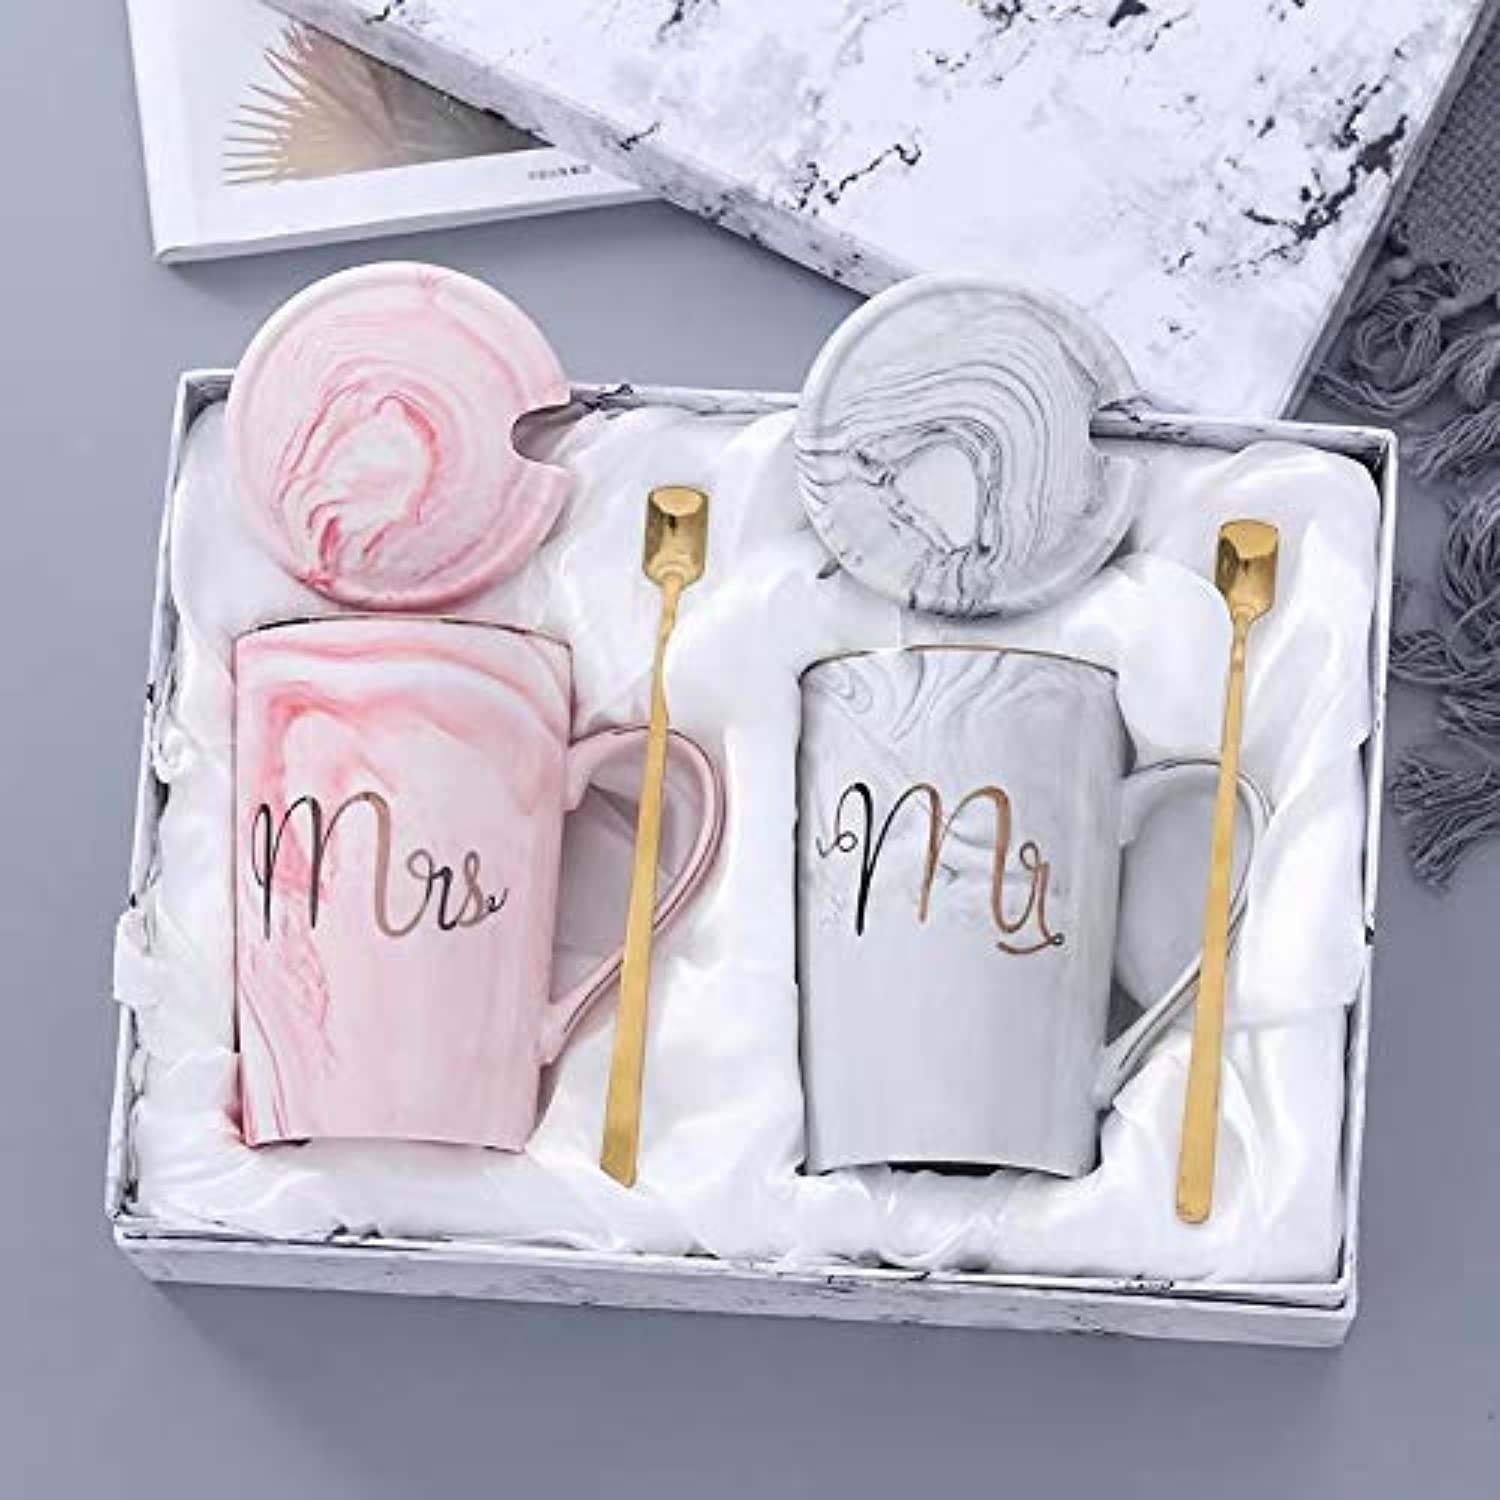 A set of pastel pink and grey Mrs. & Mr. Coffee mugs.